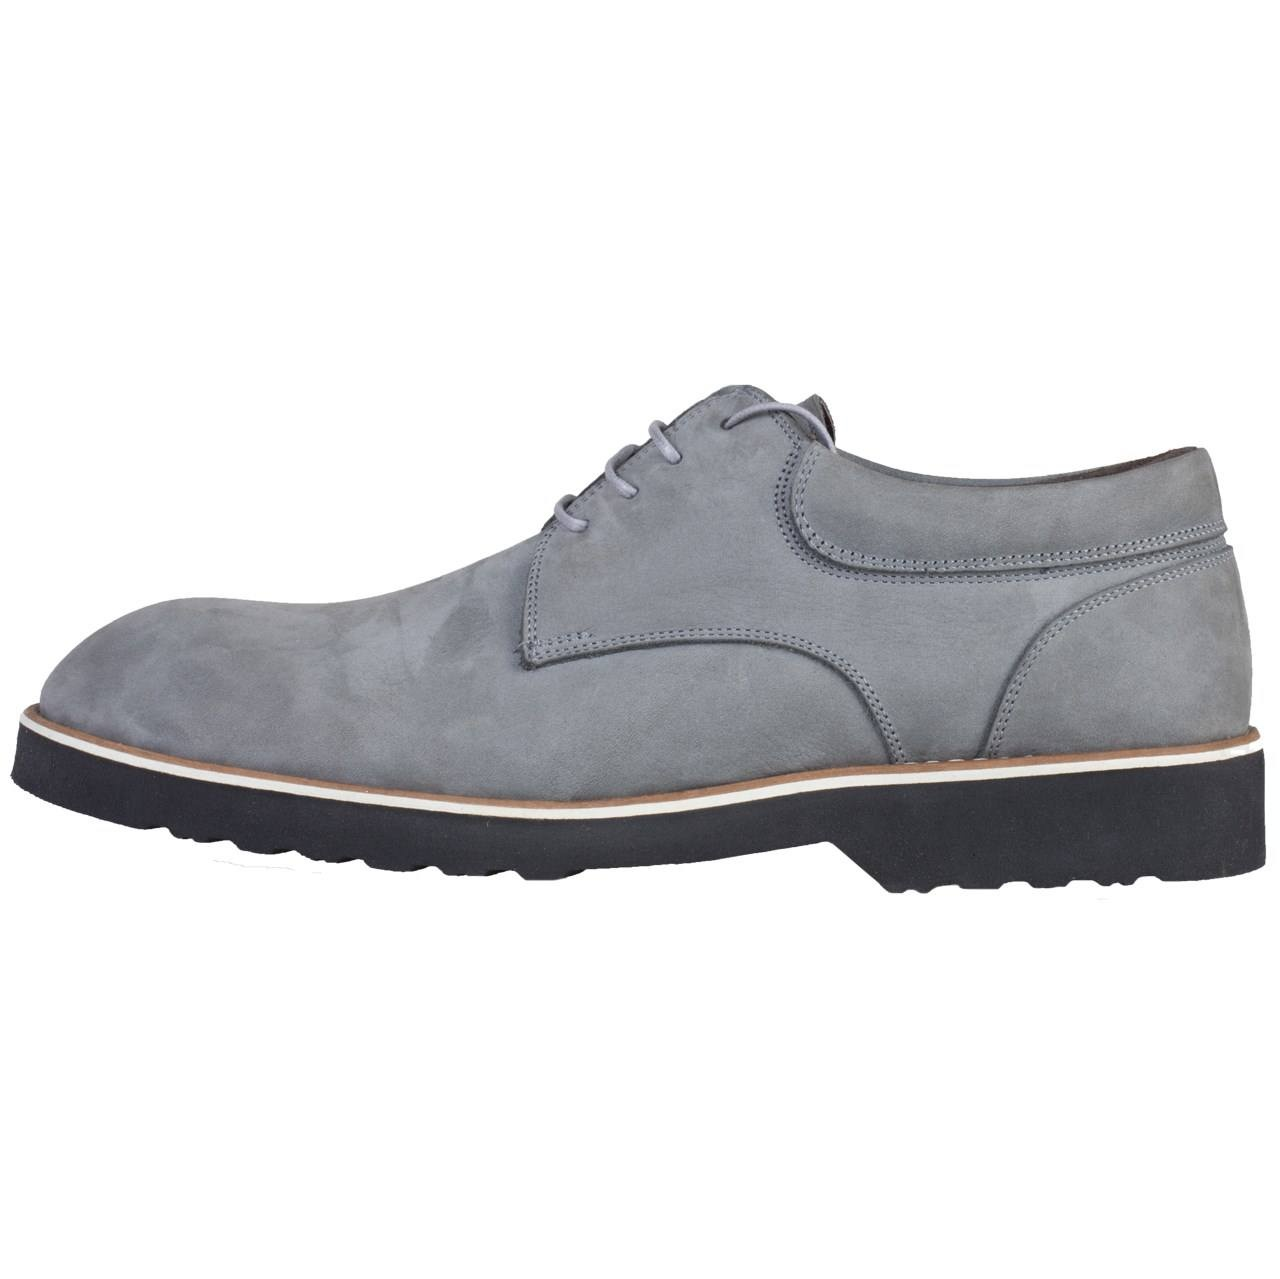 RASACHARM leather men's shoes, code 107